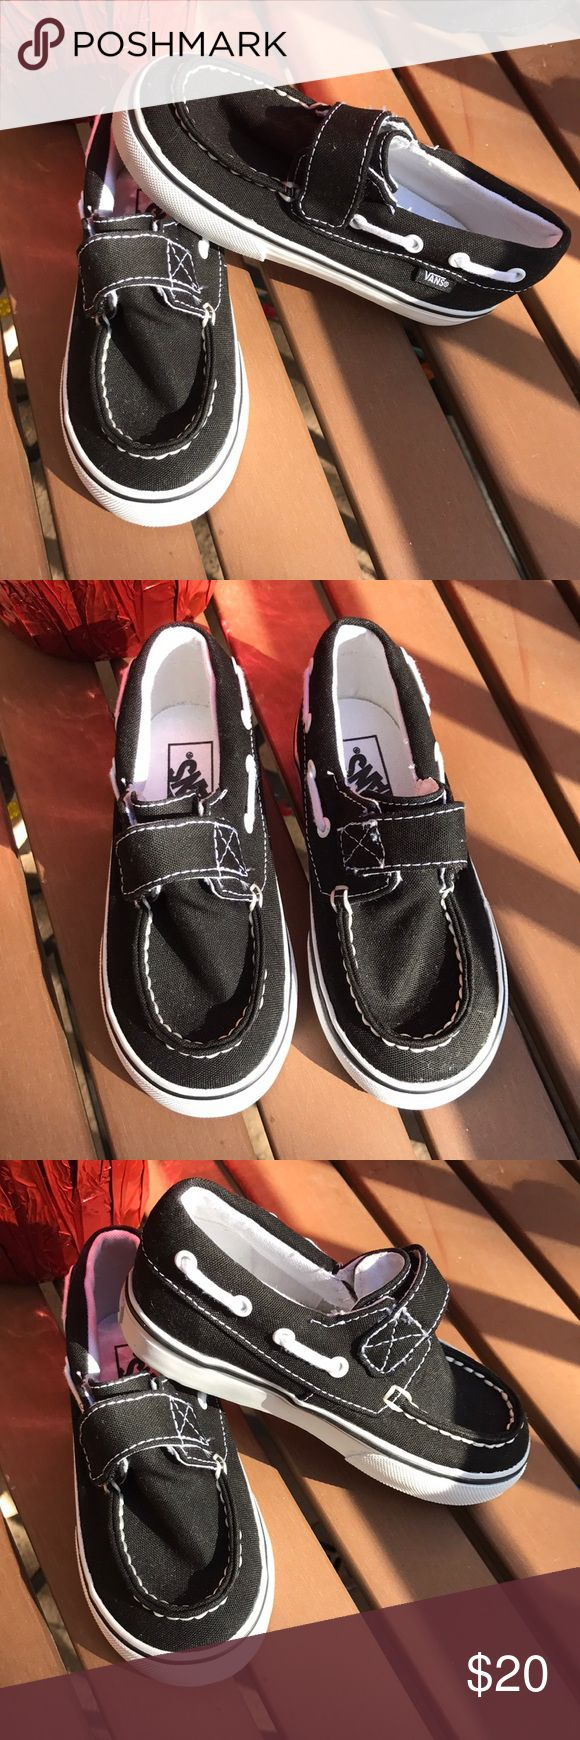 Boys Vans boat shoe sneakers Vans new boat shoe sneakers. Never worn black and white shoes. Velcro opening. Vans Shoes Sneakers